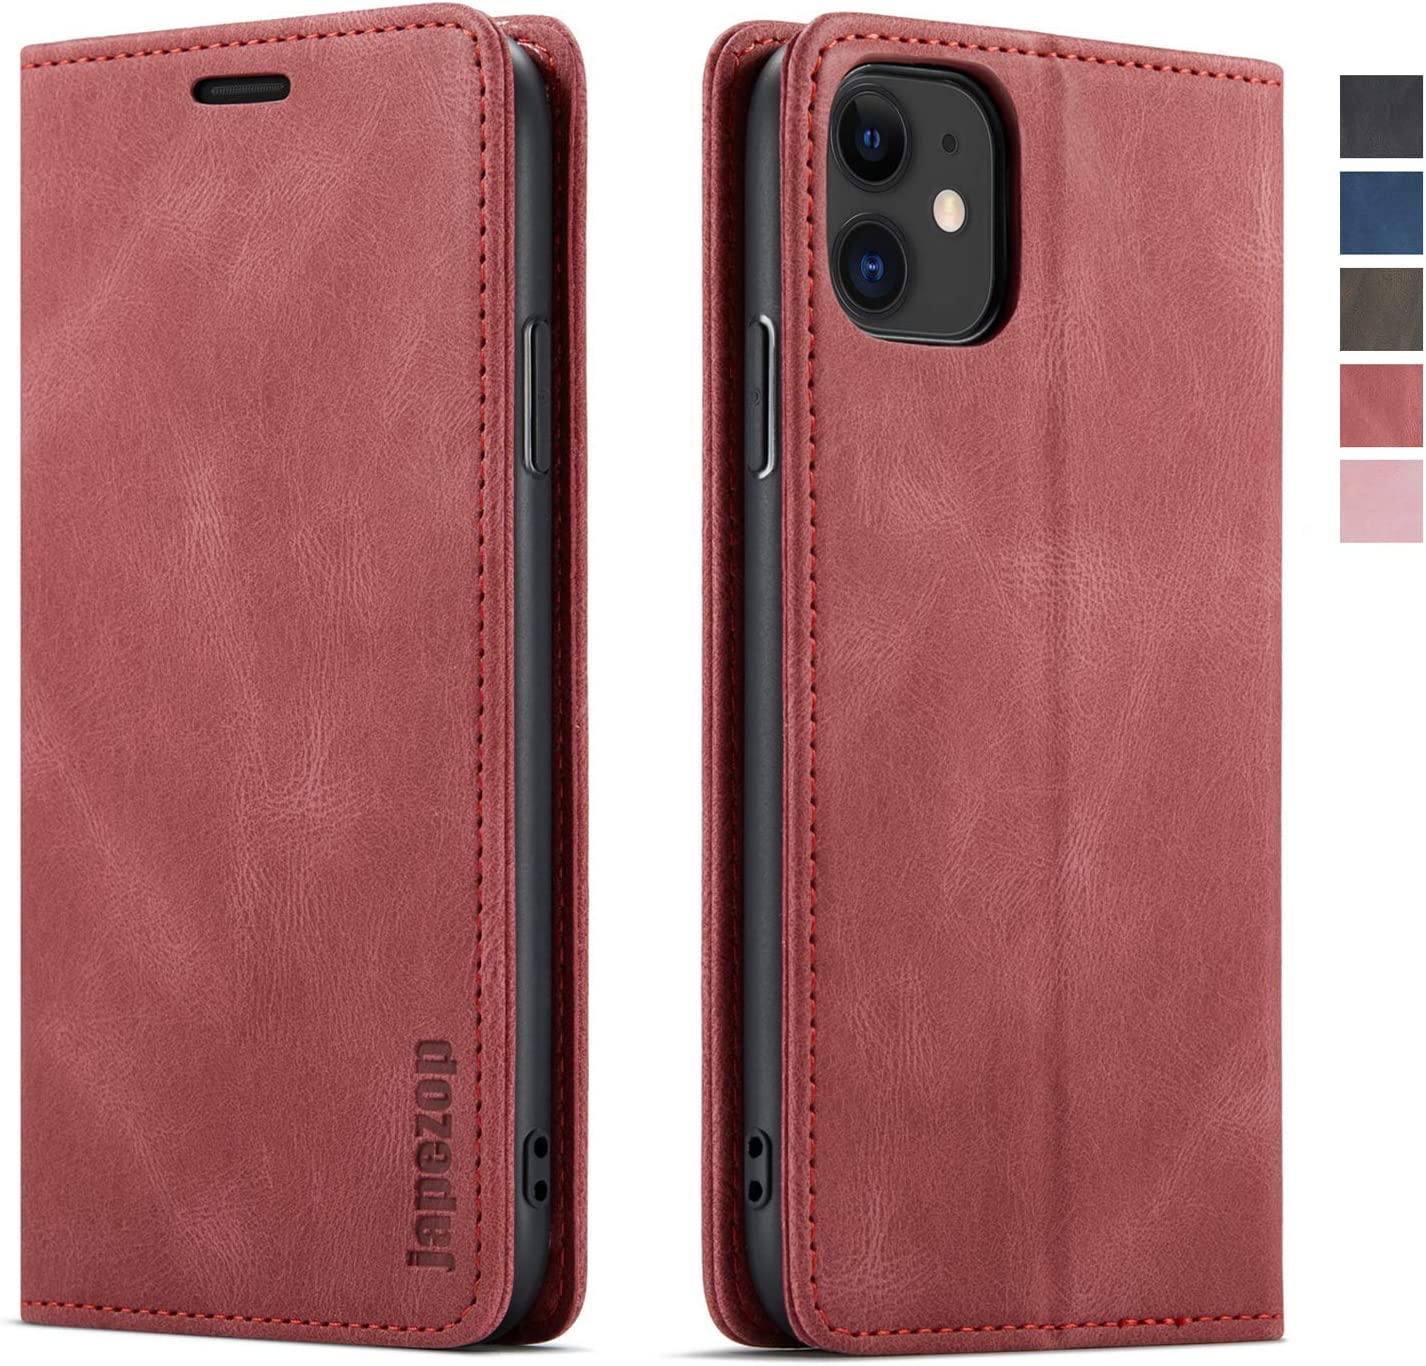 iPhone 11 Case,iPhone 11 Wallet Case for Women with[RFID Blocking] Card Holder Kickstand, Leather Flip Case Wallet for iPhone 11 6.1 inch (Wine Red)